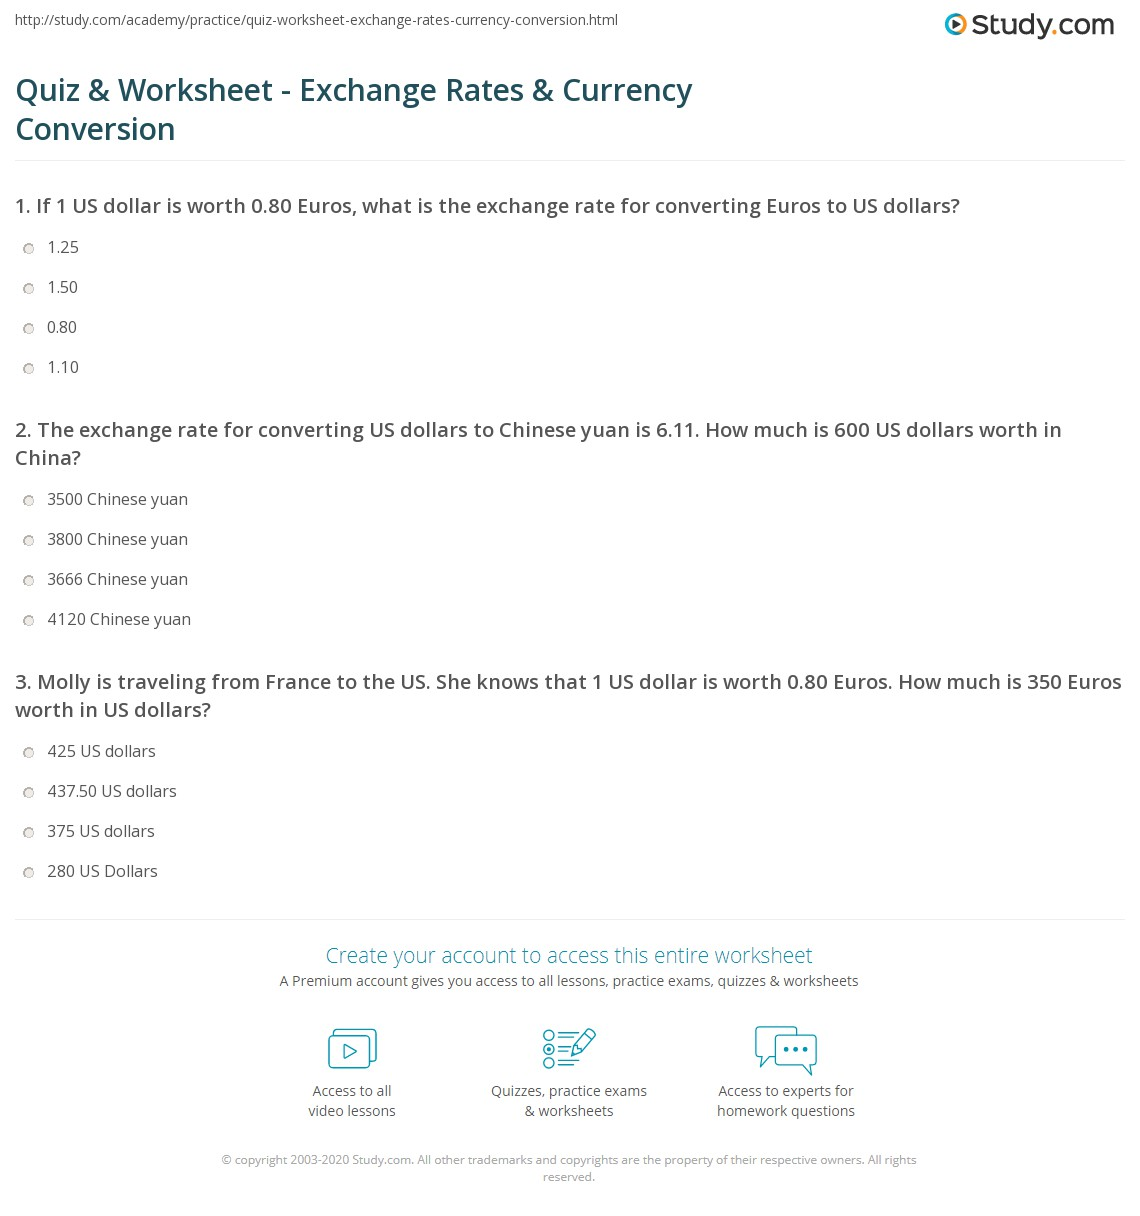 Weirdmailus  Personable Quiz Amp Worksheet  Exchange Rates Amp Currency Conversion  Studycom With Lovable Print Exchange Rates Amp Currency Conversion Worksheet With Attractive Worksheets For Adhd Children Also Prefixes Un And Re Worksheets In Addition Me On The Map Worksheets And Volume And Capacity Worksheets As Well As Math Review Worksheet Additionally Reflections Geometry Worksheets From Studycom With Weirdmailus  Lovable Quiz Amp Worksheet  Exchange Rates Amp Currency Conversion  Studycom With Attractive Print Exchange Rates Amp Currency Conversion Worksheet And Personable Worksheets For Adhd Children Also Prefixes Un And Re Worksheets In Addition Me On The Map Worksheets From Studycom